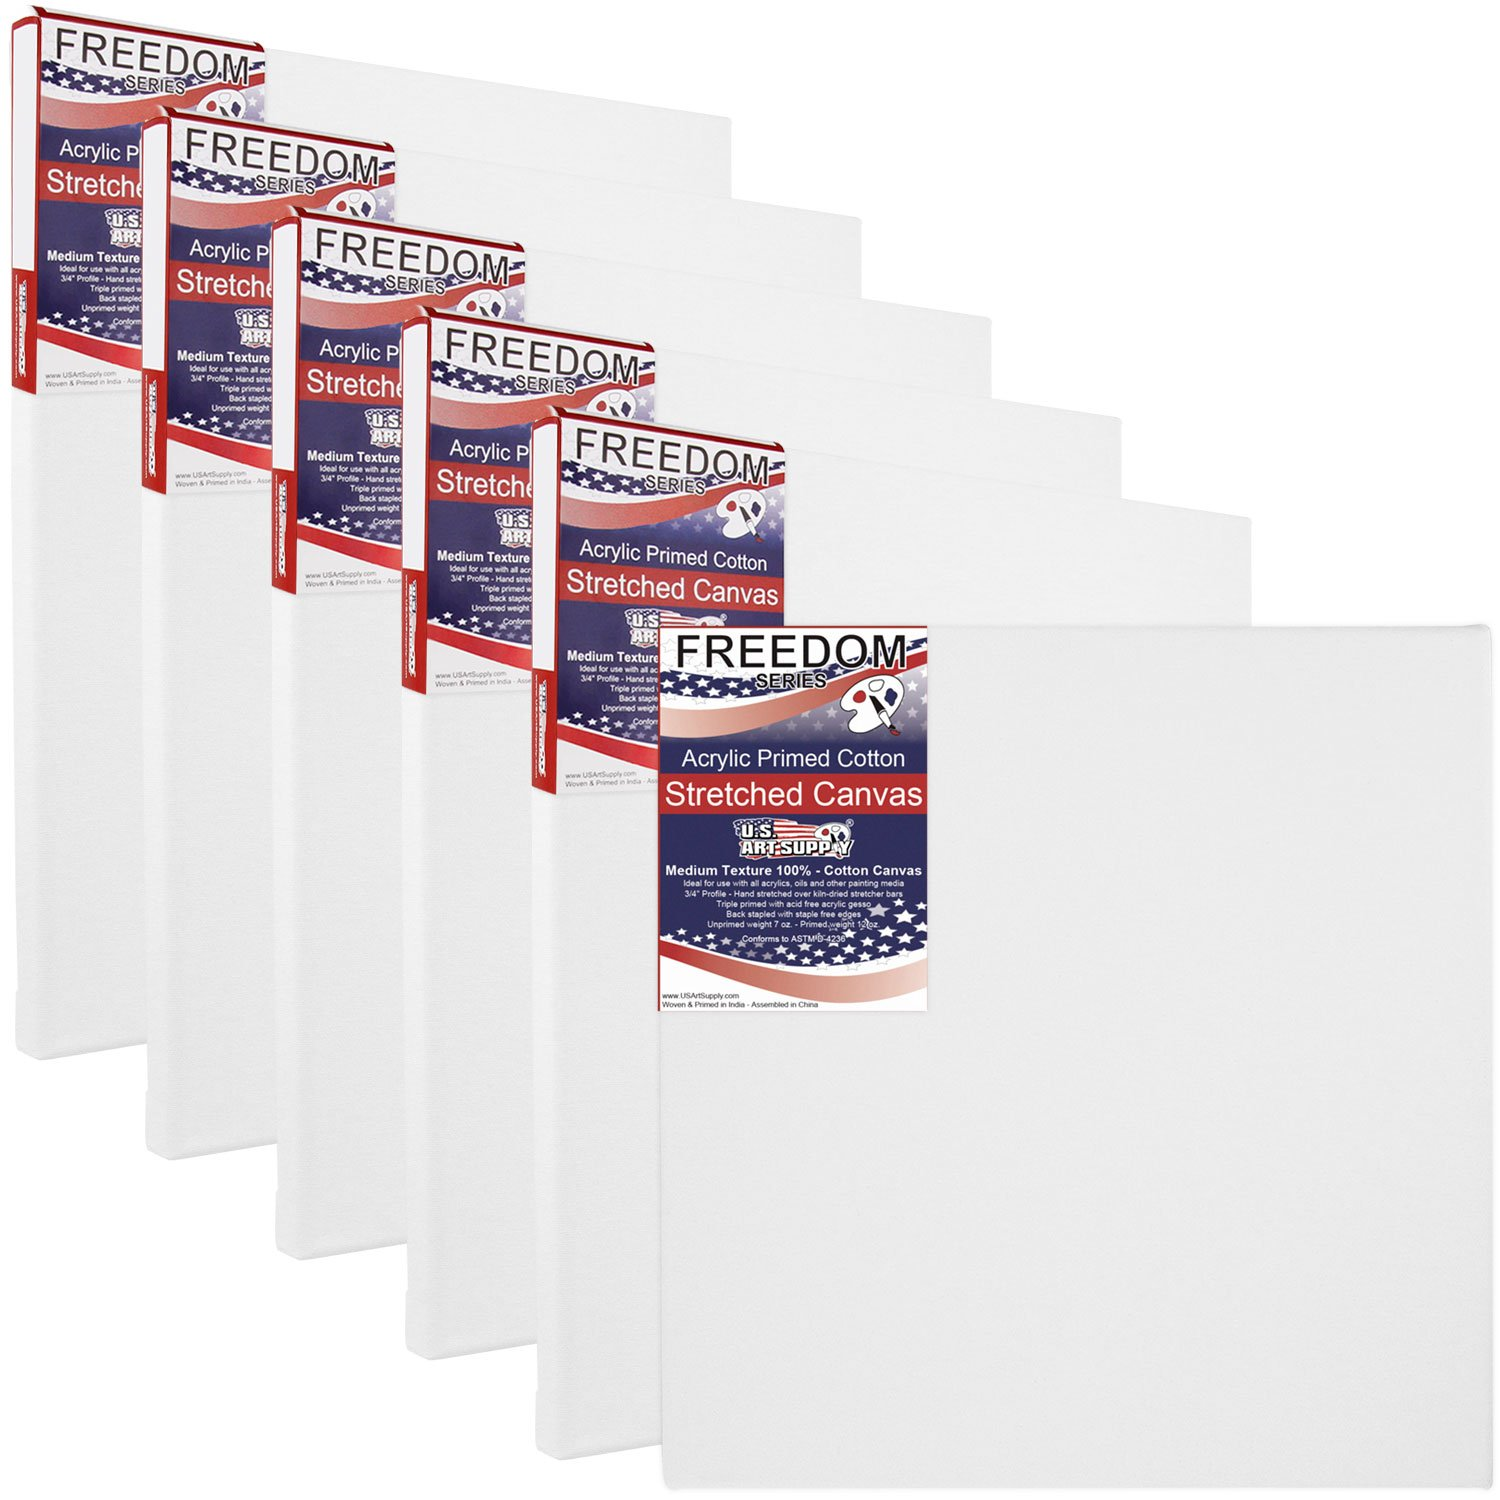 US Art Supply 16 X 16 Inch Professional Quality Acid-Free Stretched Canvas 6-Pack - 3/4 Profile 12 Ounce Primed Gesso - (1 Full Case of 6 Single Canvases)